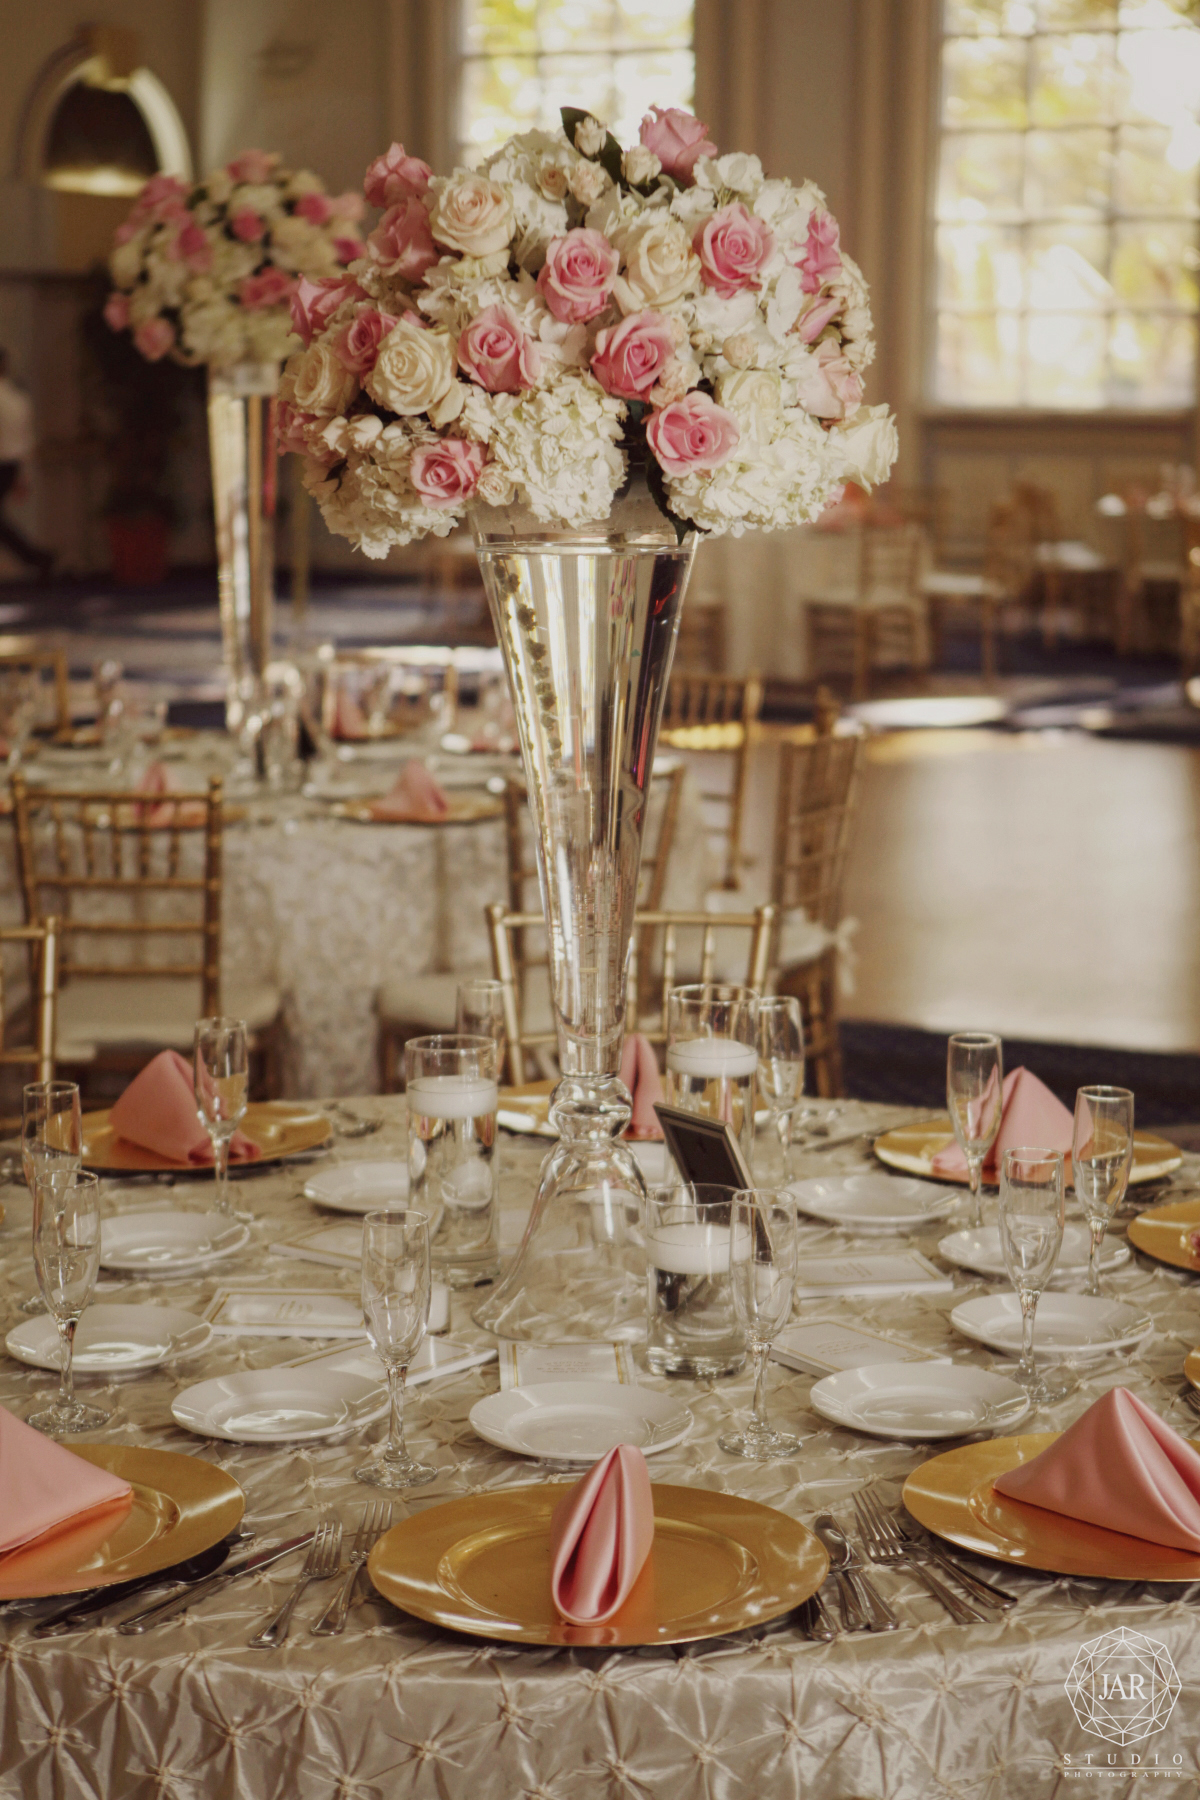 29-jewish-wedding-venue-flowers-tables-jarstudio-photography-orlando.JPG